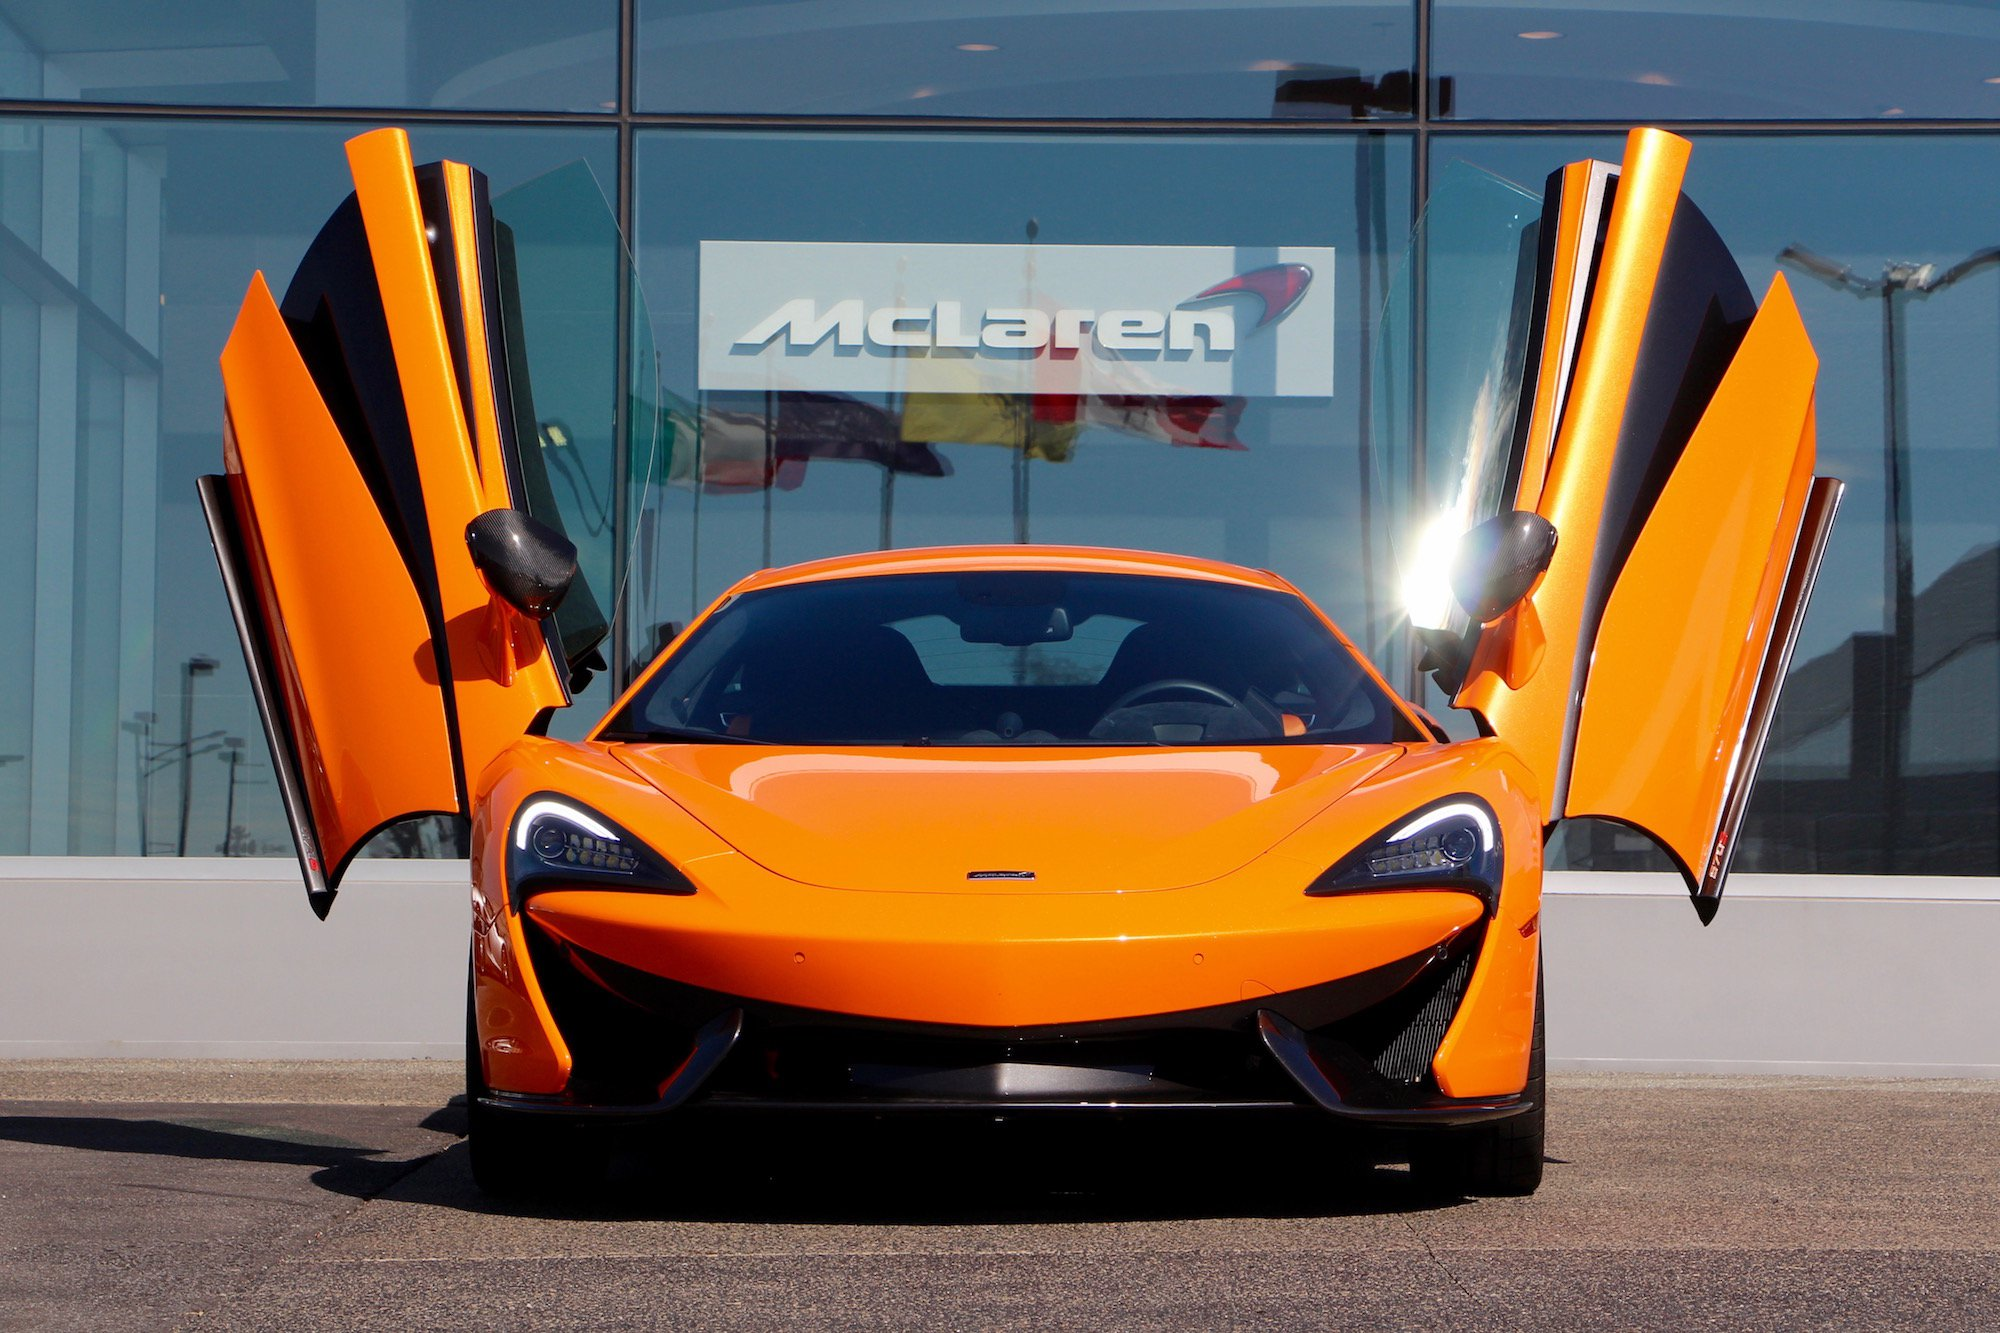 There's a McLaren Coming for Families